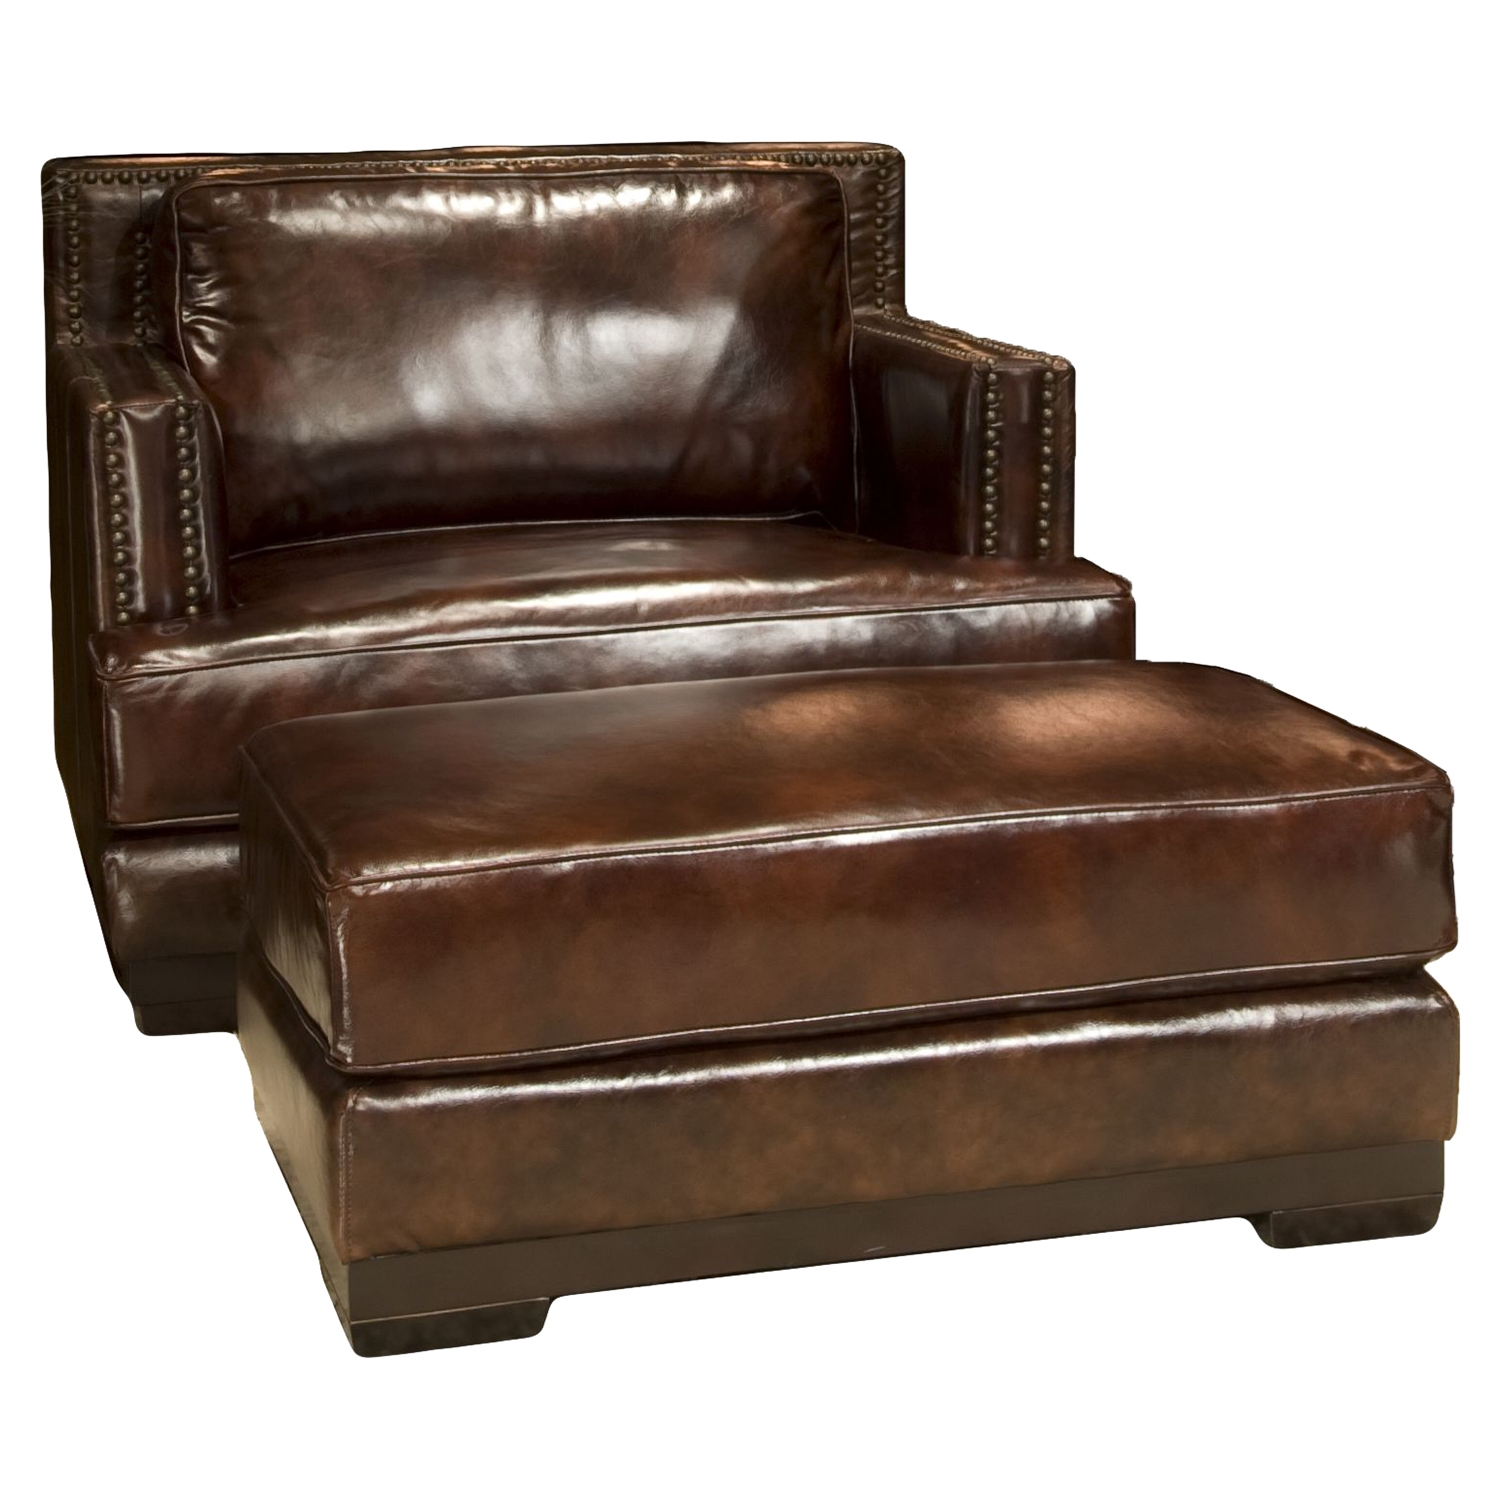 Easton Top Grain Leather Accent Chair and Ottoman - Saddle - ELE-EAS-2PC-SC-SO-SADD-1